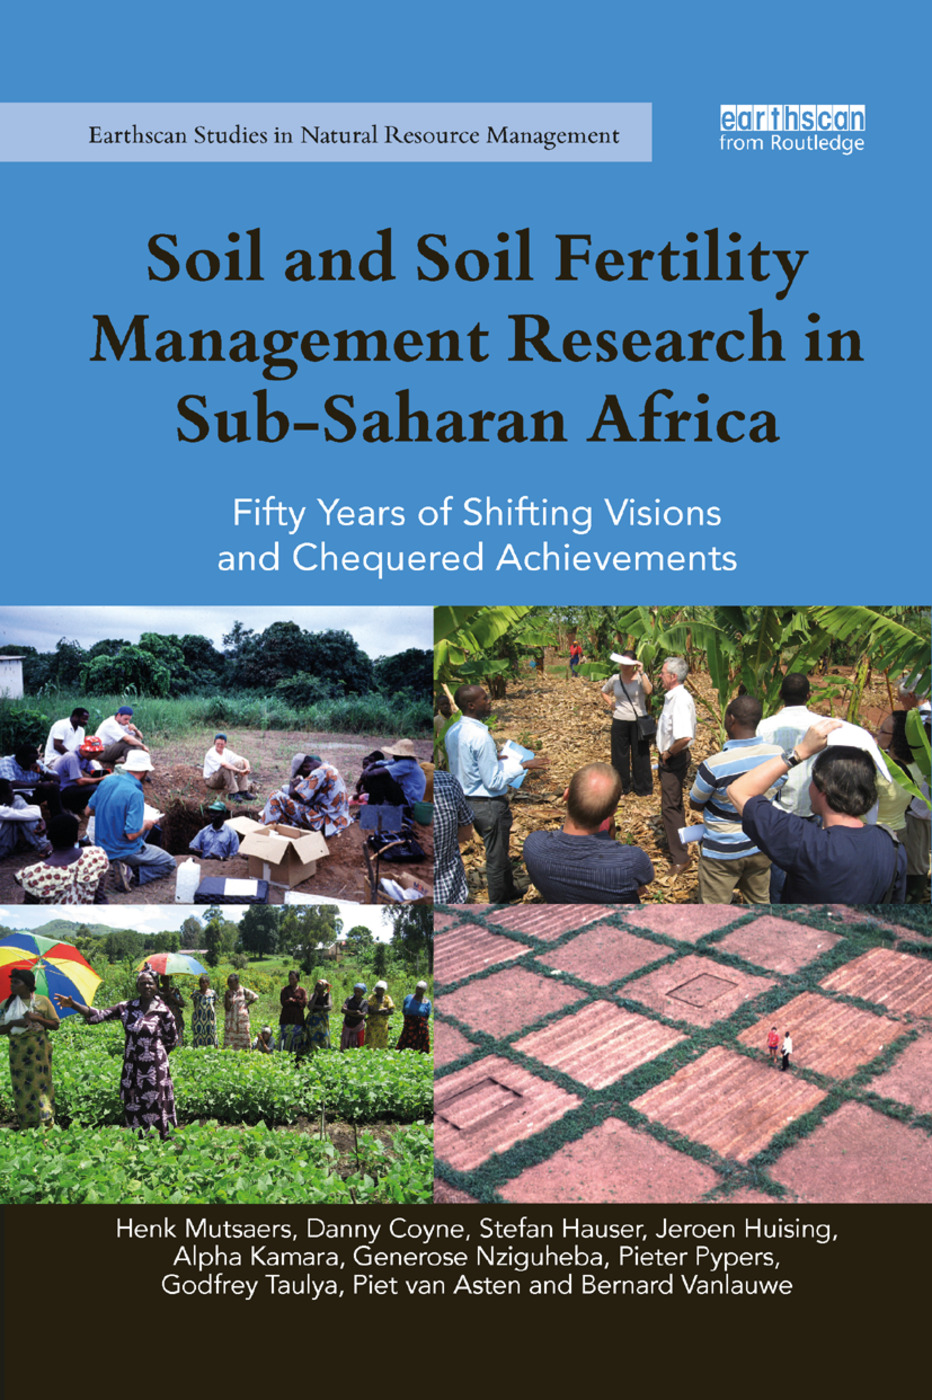 Soil and Soil Fertility Management Research in Sub-Saharan Africa: Fifty years of shifting visions and chequered achievements book cover